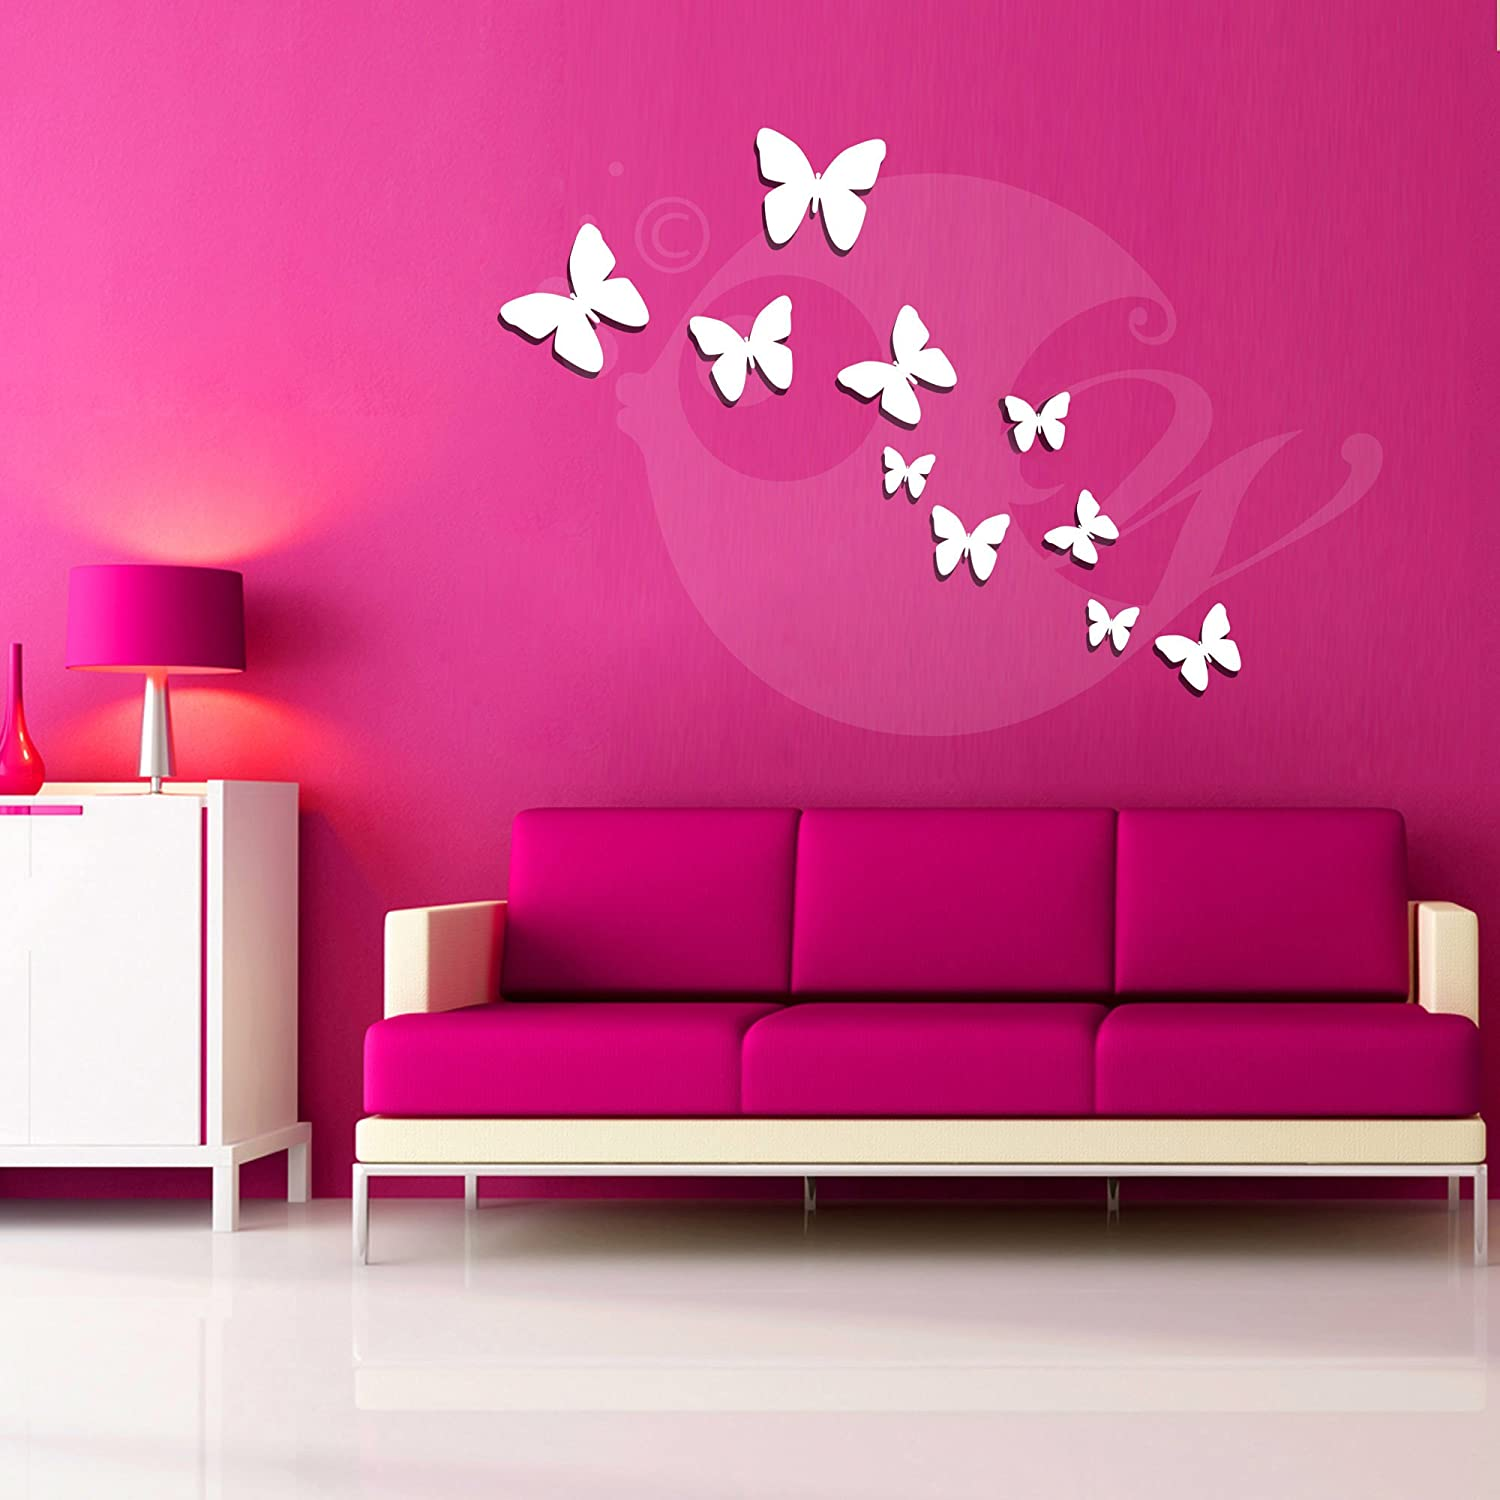 Buy Butterflies Acrylic 3D Wall Art Sticker (10 Pieces) Online At Low  Prices In India   Amazon.in